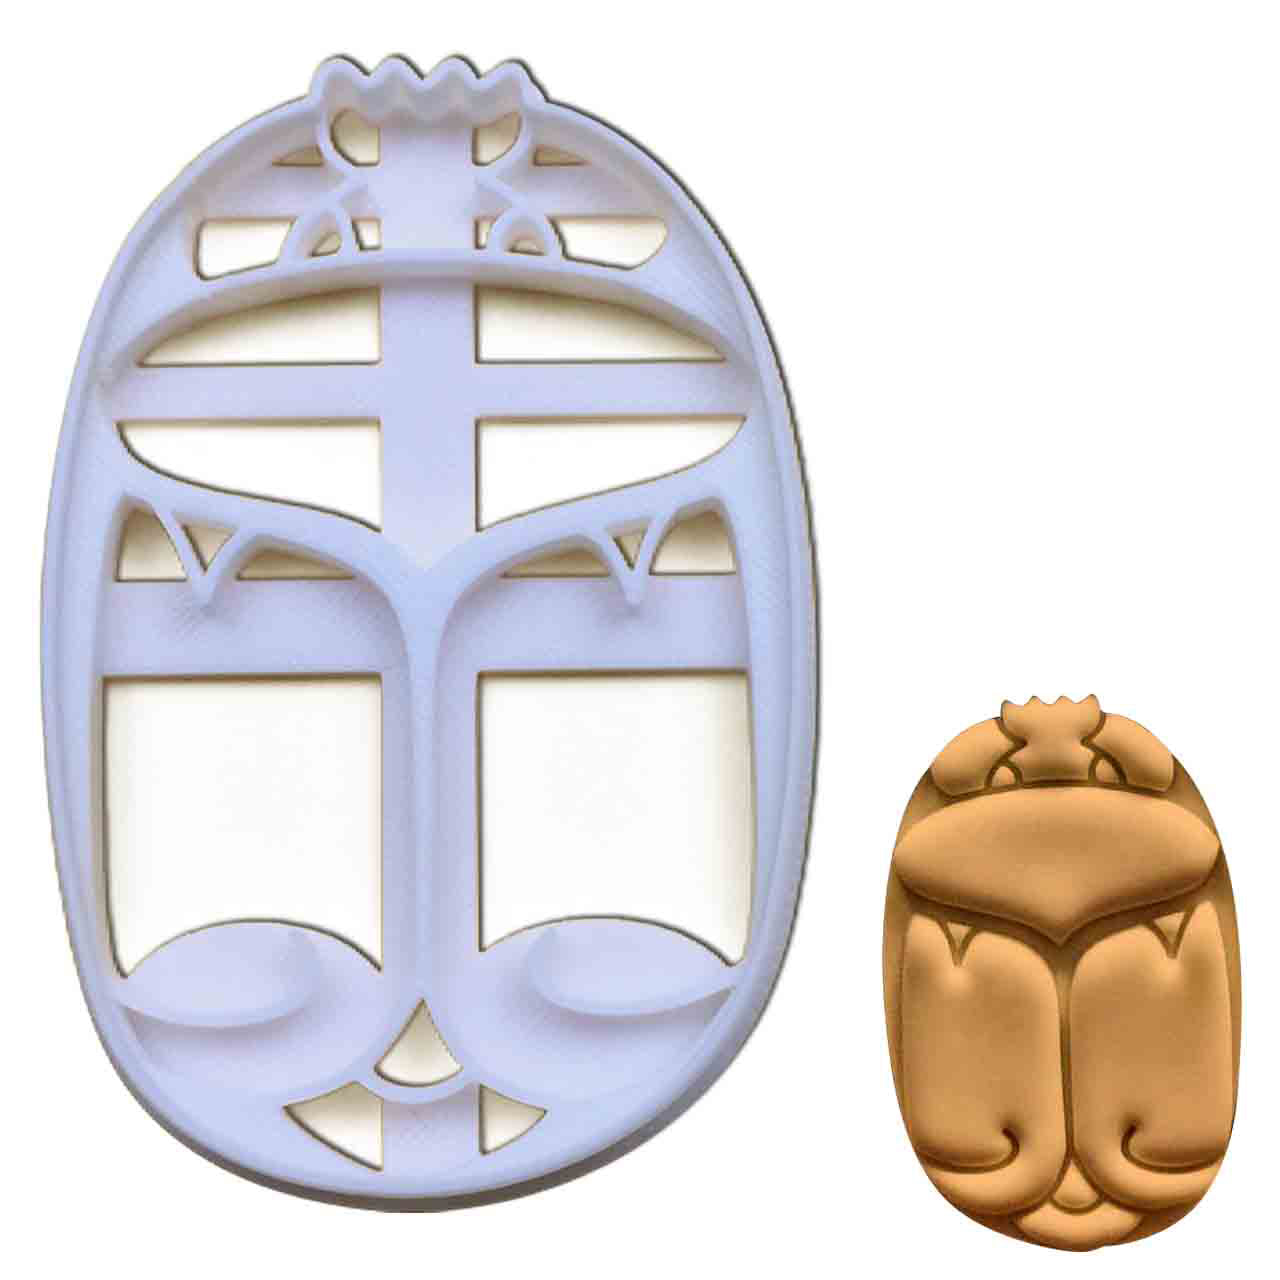 Egyptian Scarab Beetle cookie cutter pressed on fondant